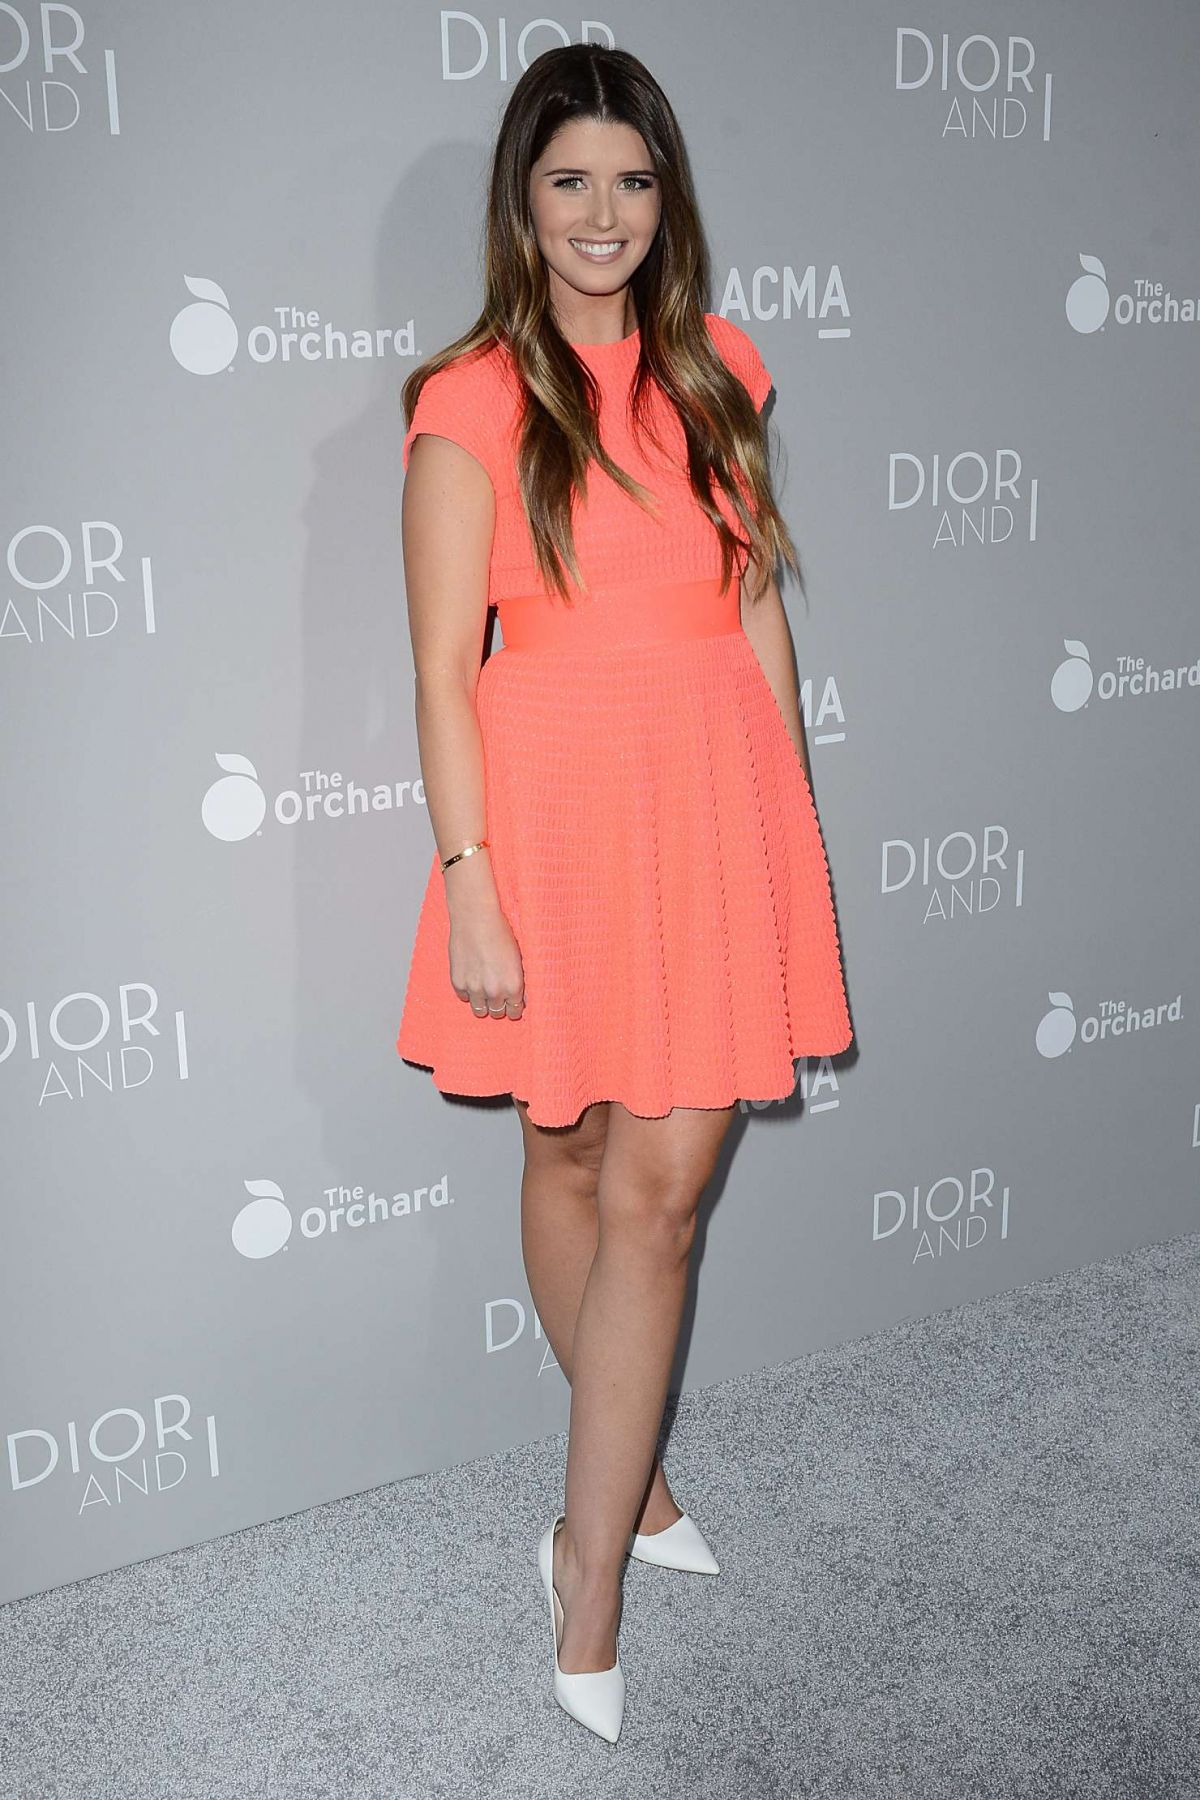 KATHERINE SCHWARZENEGGER at Dior and I Premiere in Los Angeles